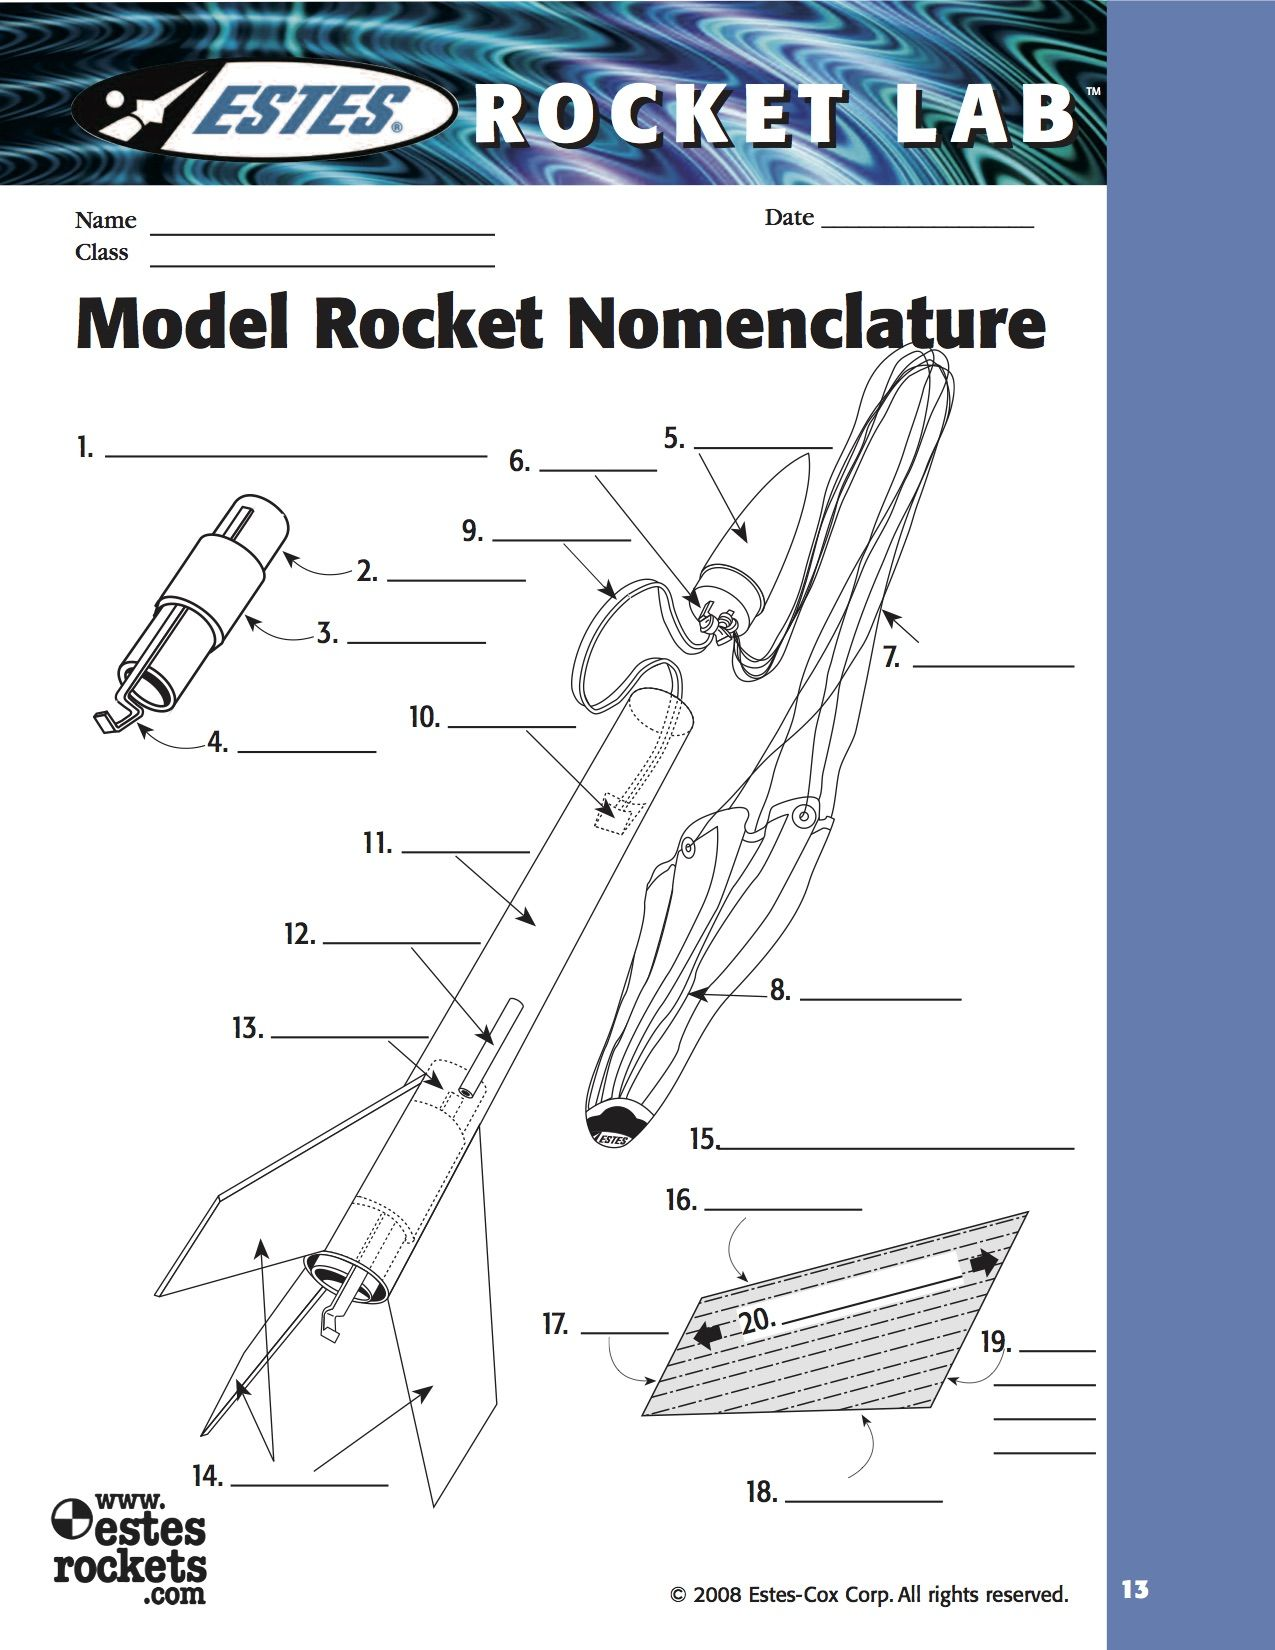 Model Rocket Nomenclature